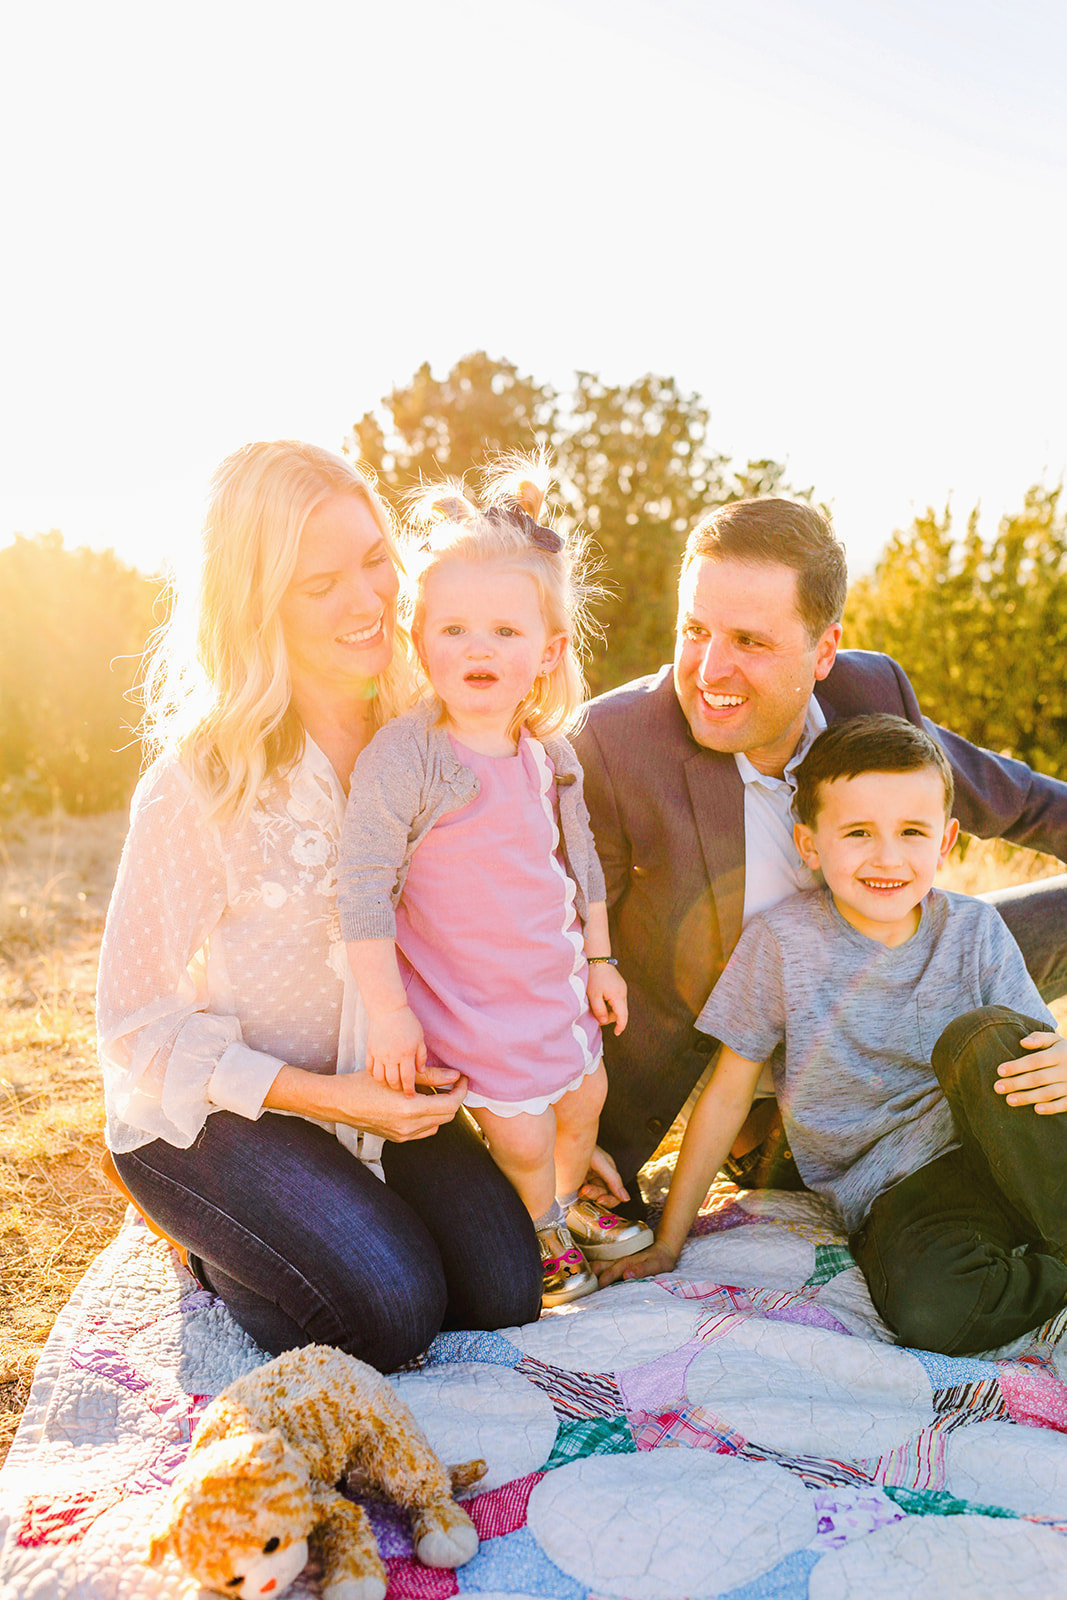 Albuquerque Family Photographer_Foothills_www.tylerbrooke.com_Kate Kauffman_022